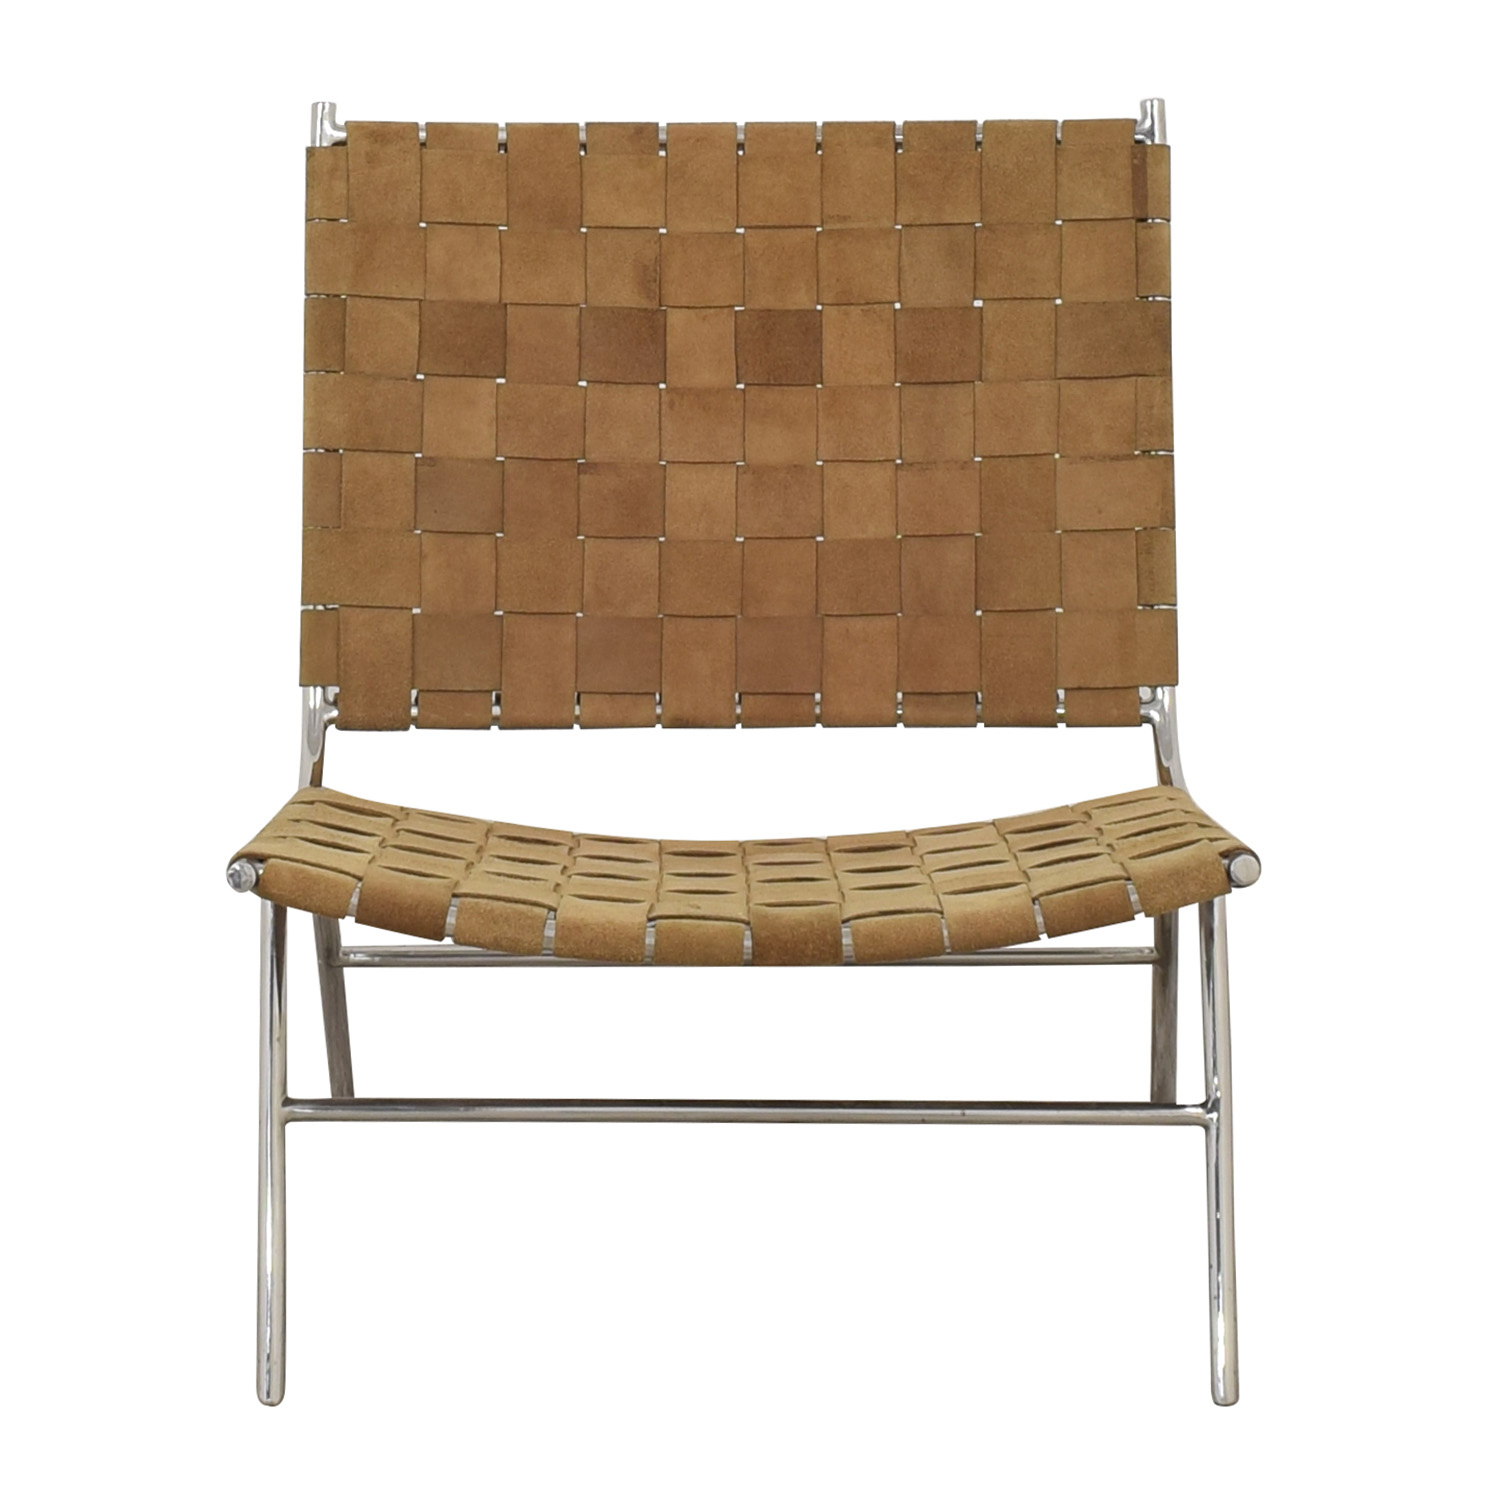 CB2 CB2 Woven Suede Chair on sale